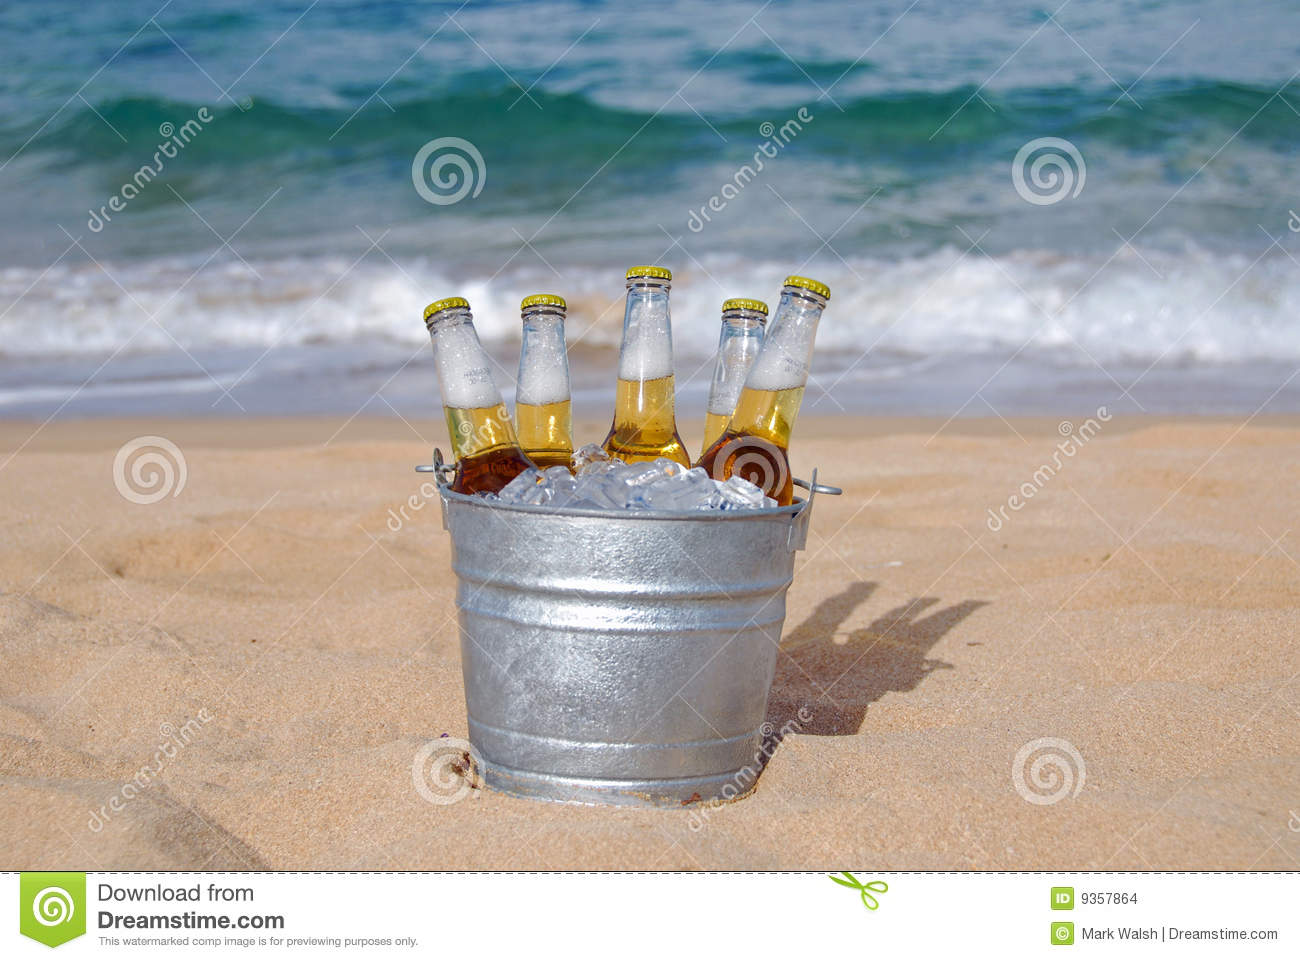 Bucket Of Ice Cold Beer On The Sandy Beach With The Ocean In The